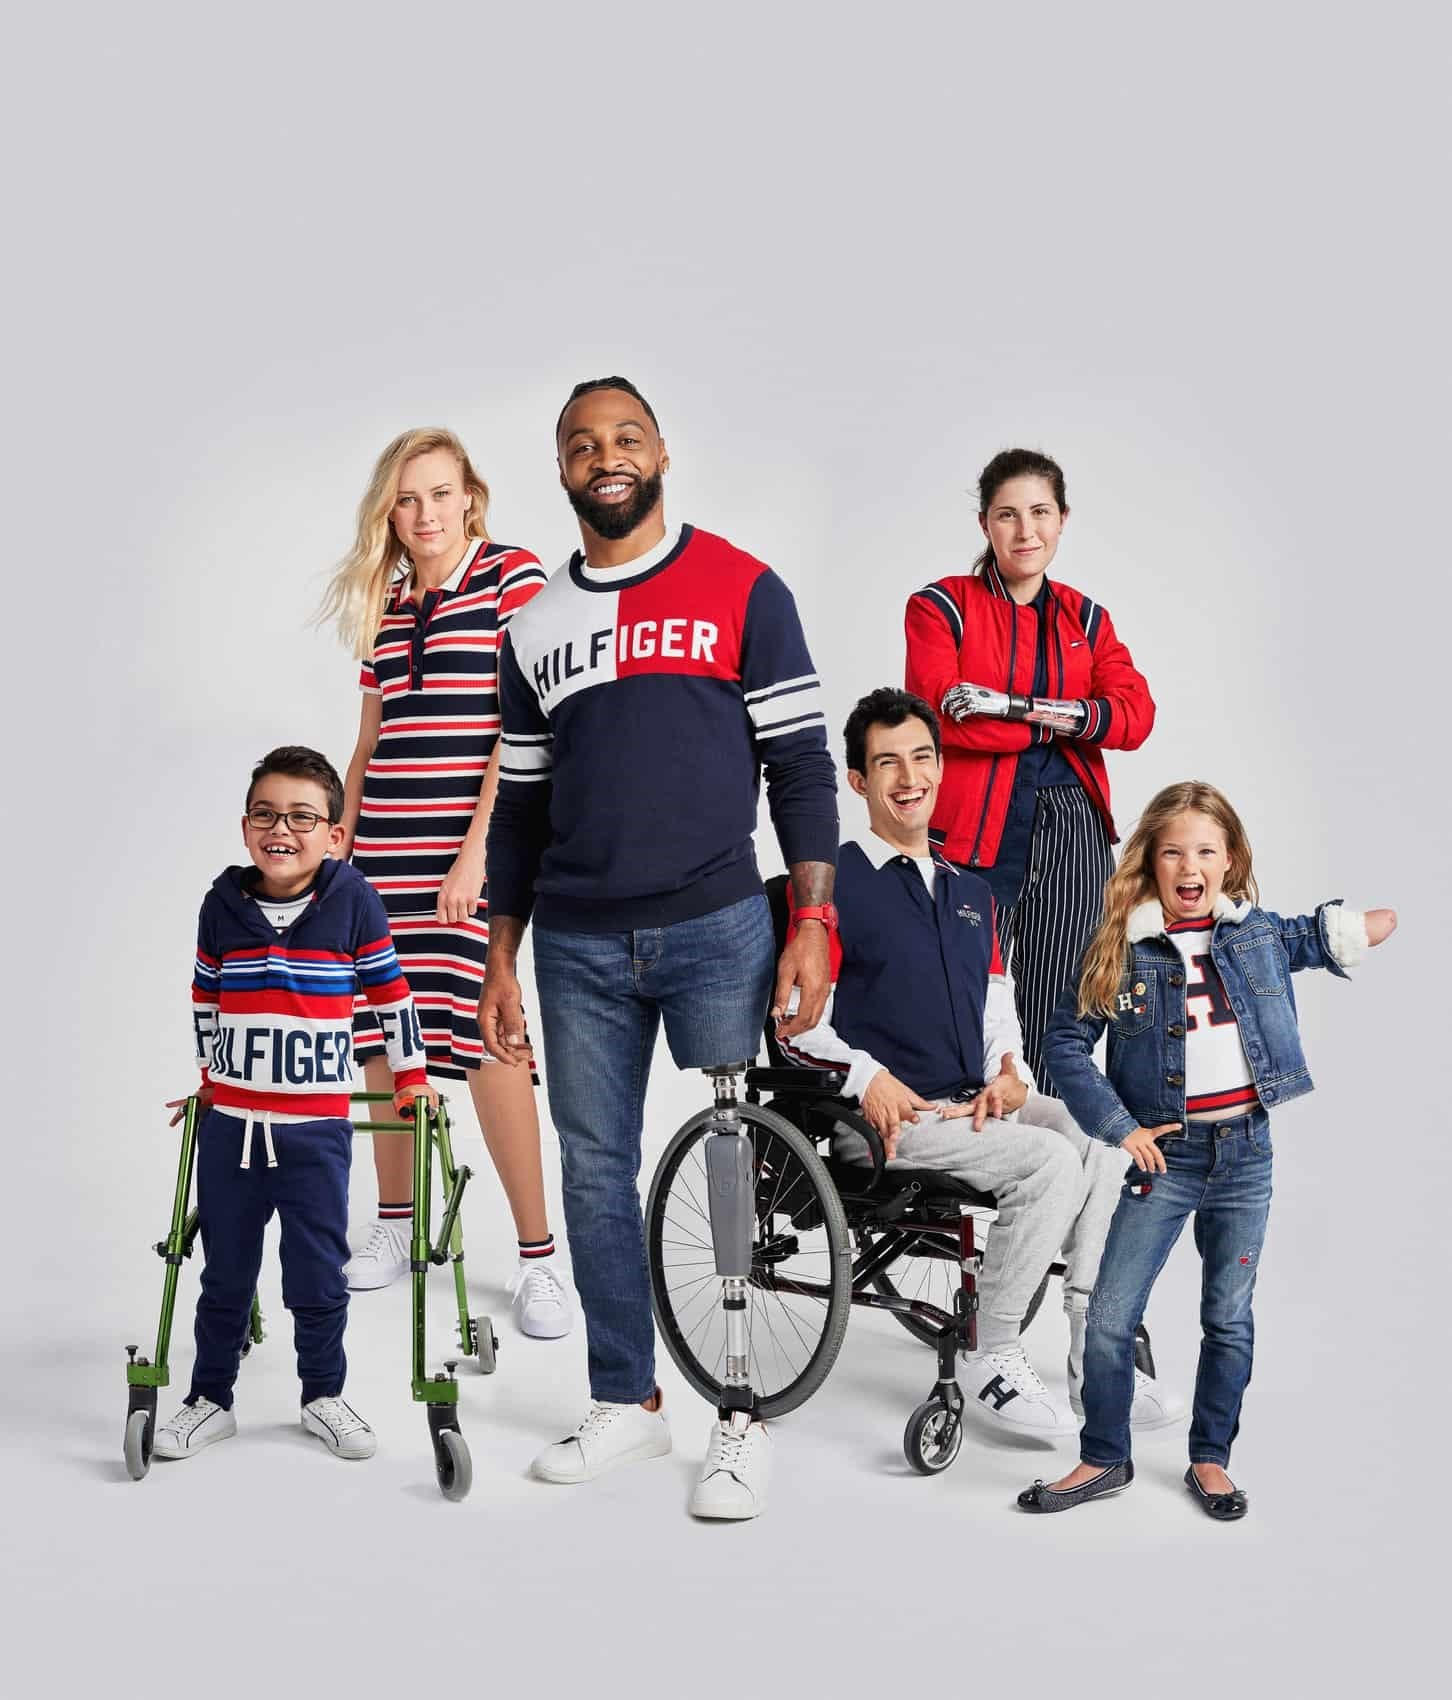 Tommy Hilfiger Adaptive is the brand's newest line that is inclusive to all and that makes clothing with disabled consumers needs in mind